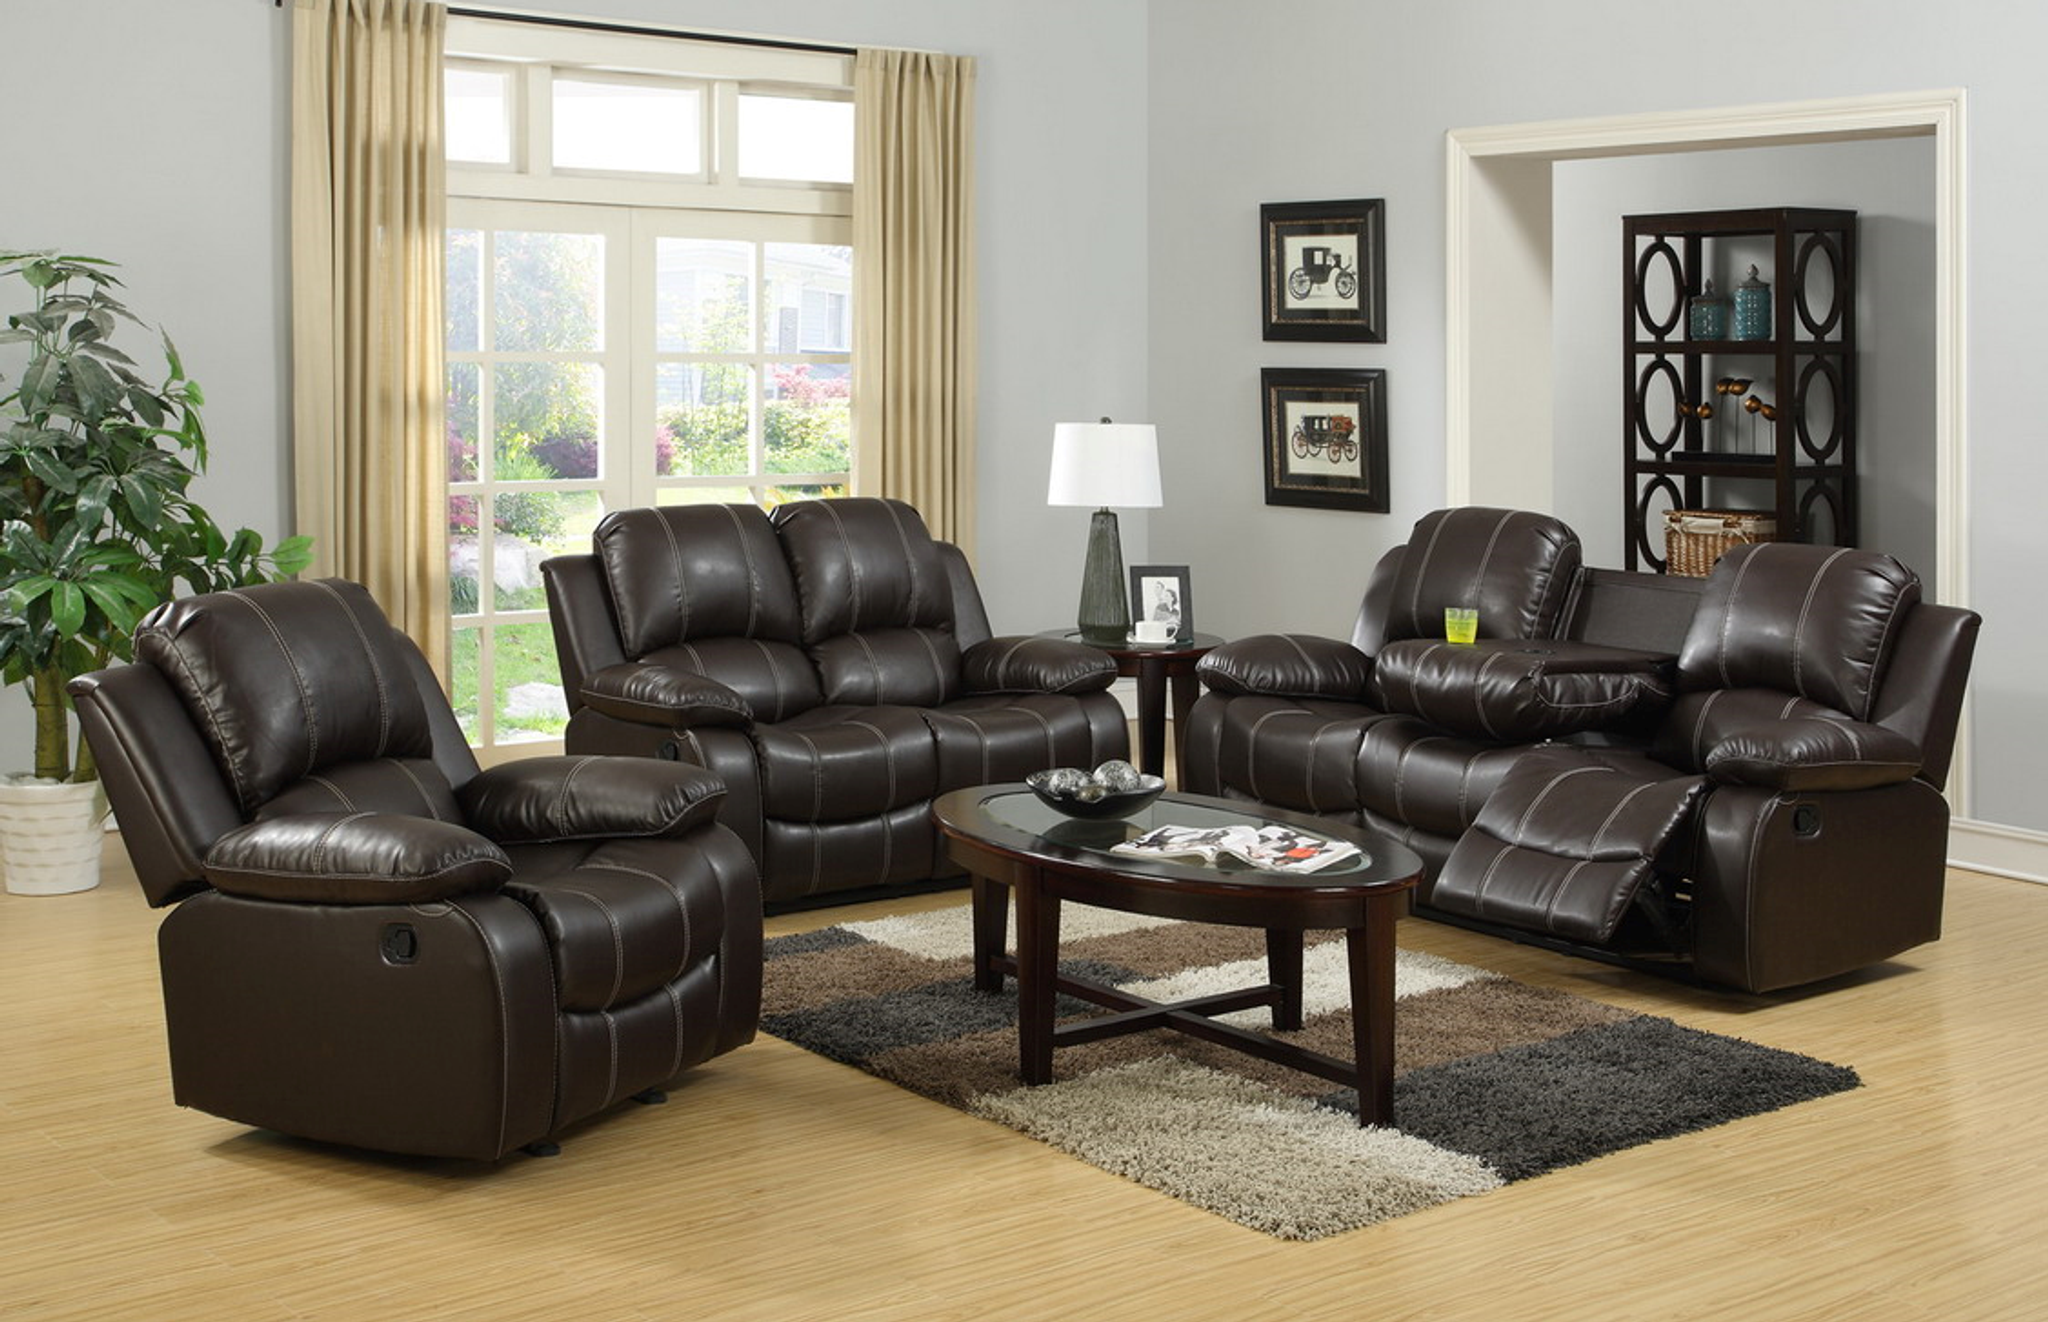 Miraculous 2Pc Palermo Leather Recliner Sofa And Loveseat Espresso Machost Co Dining Chair Design Ideas Machostcouk